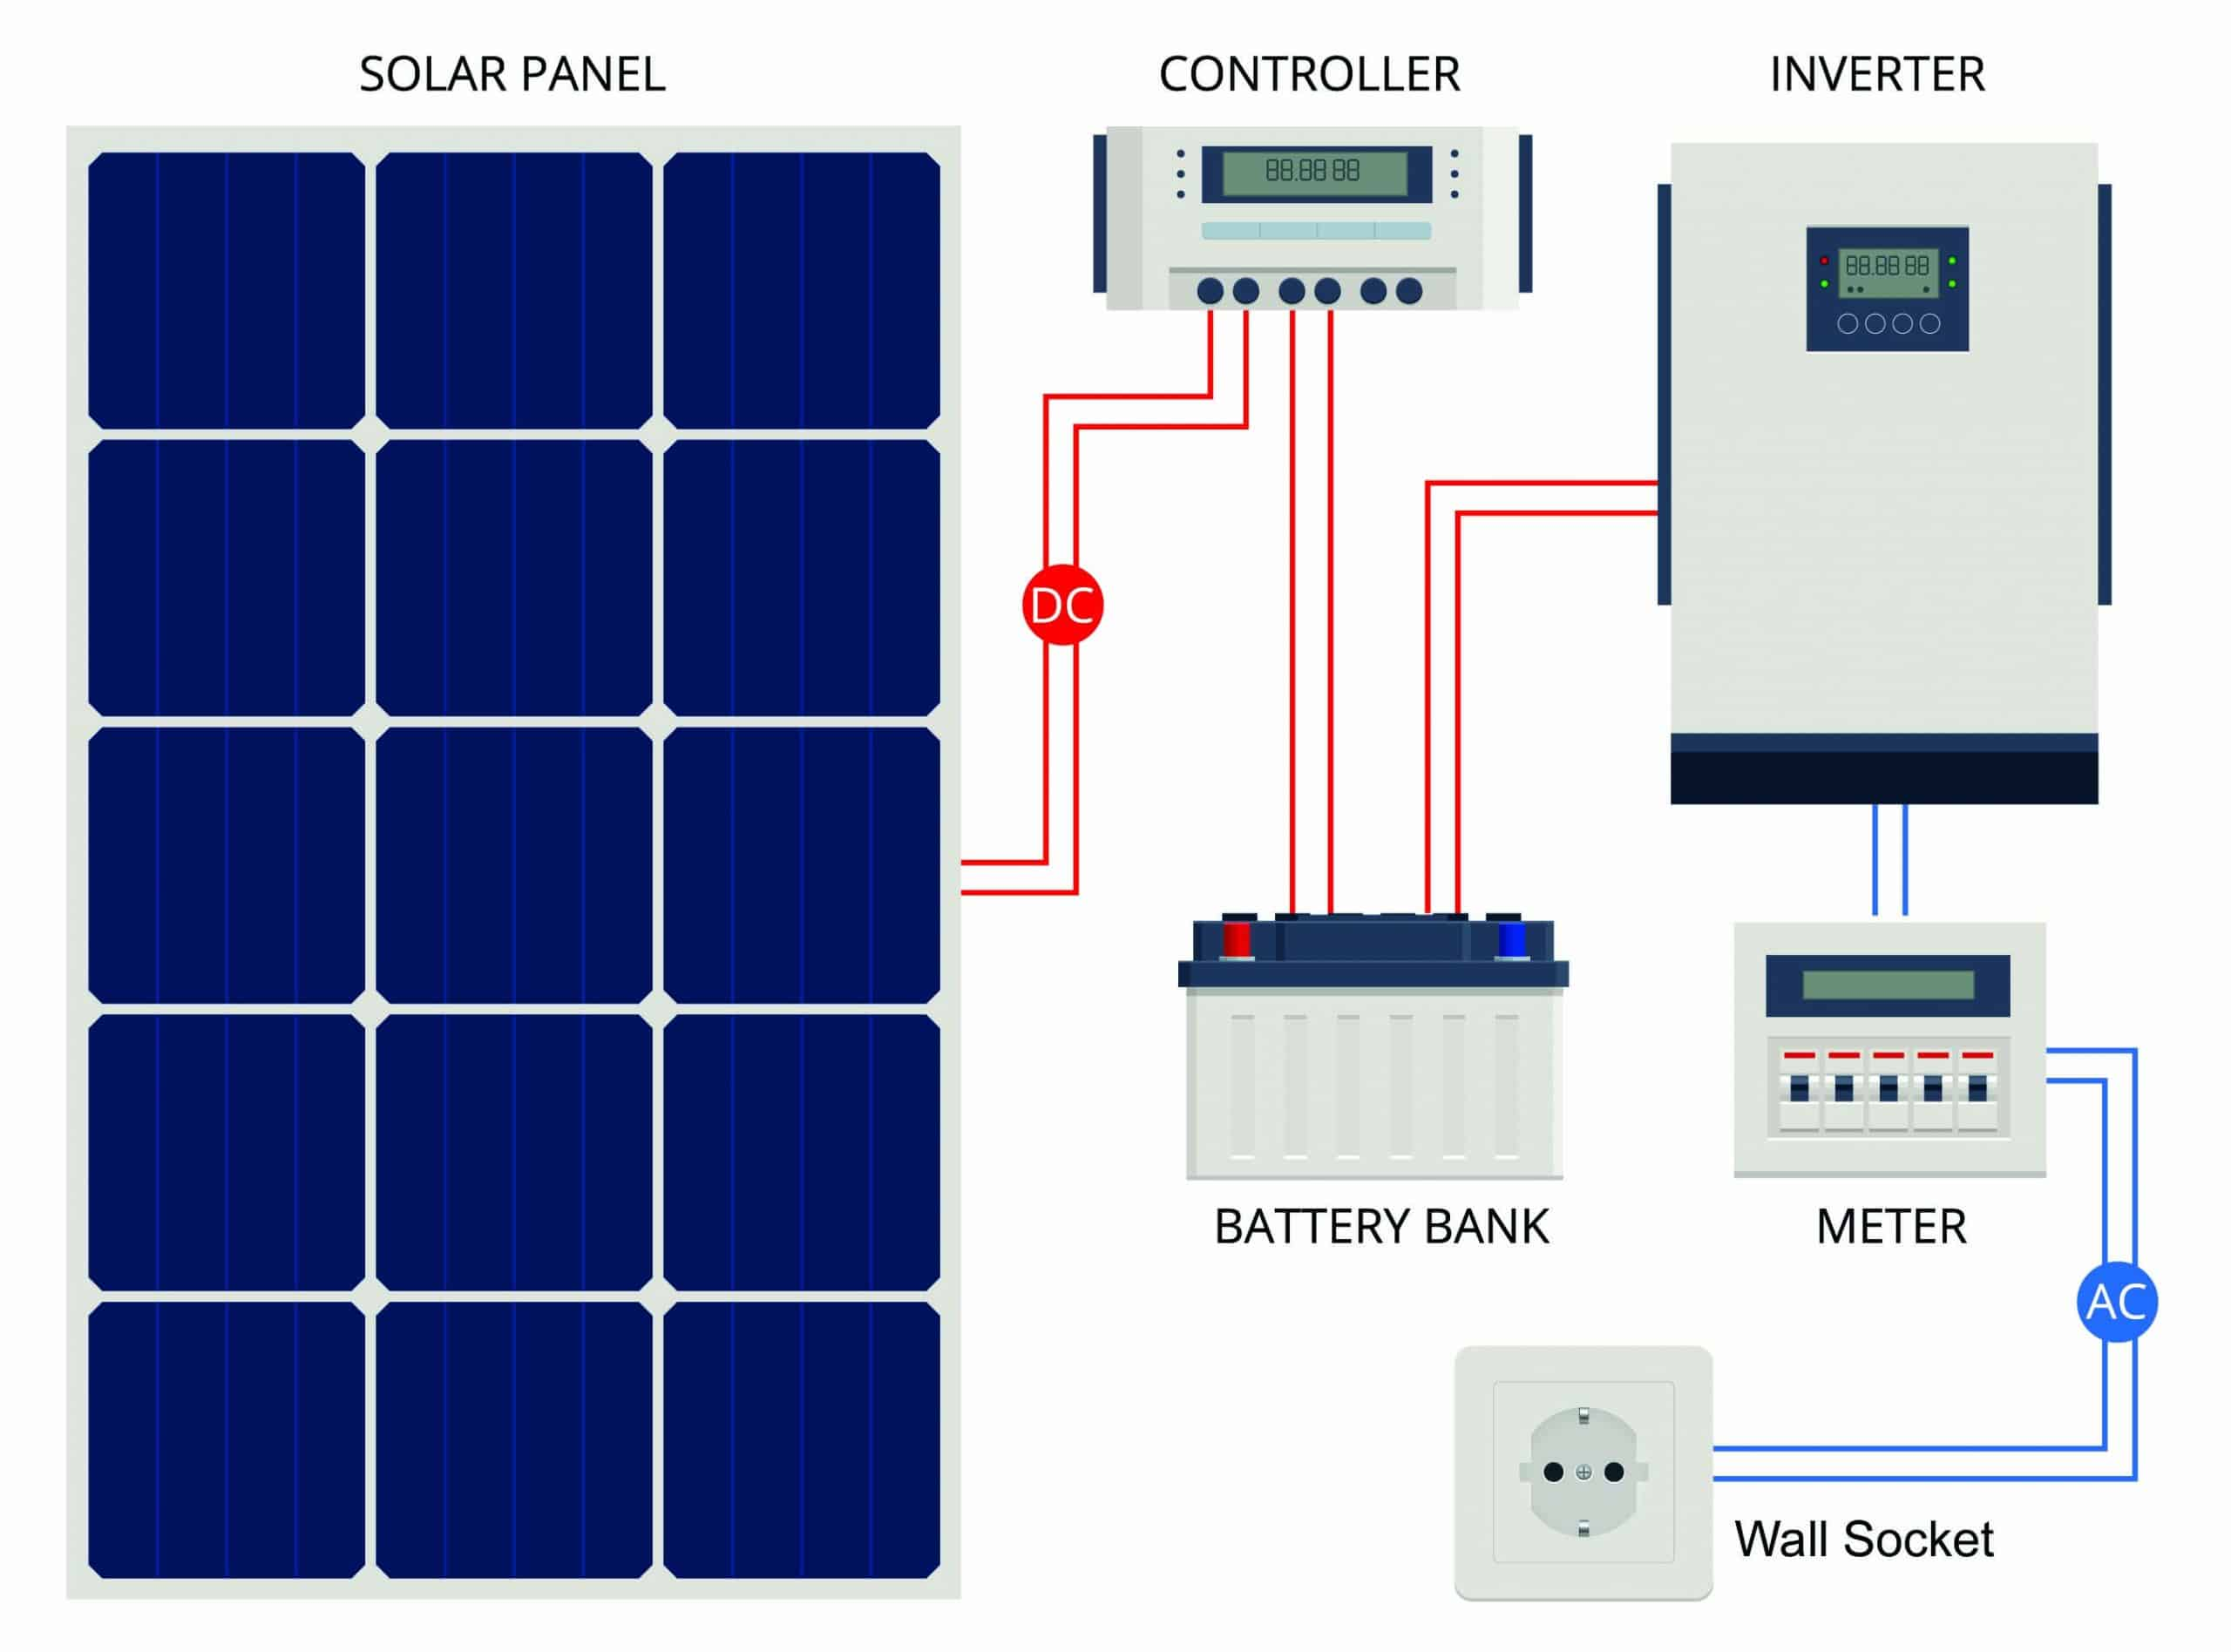 Solar Panel connections